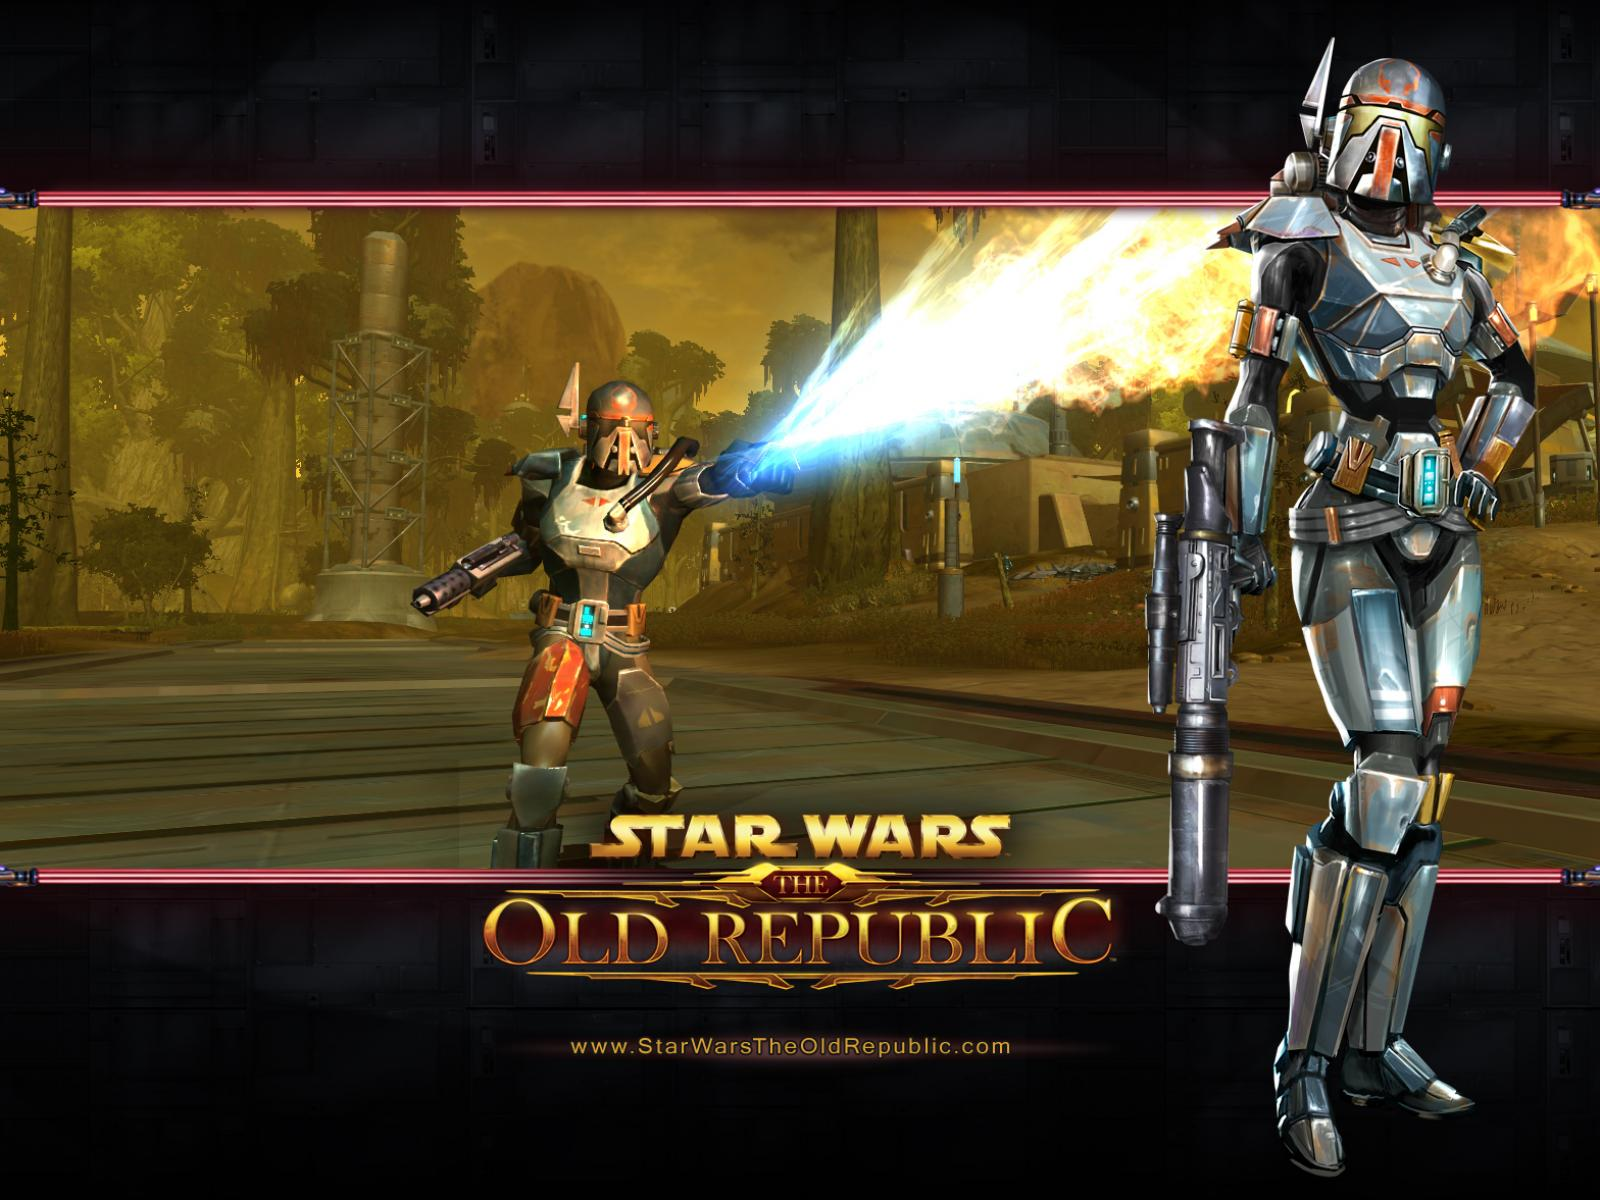 ���� Star Wars Old Republic wallpapers 1600x1200